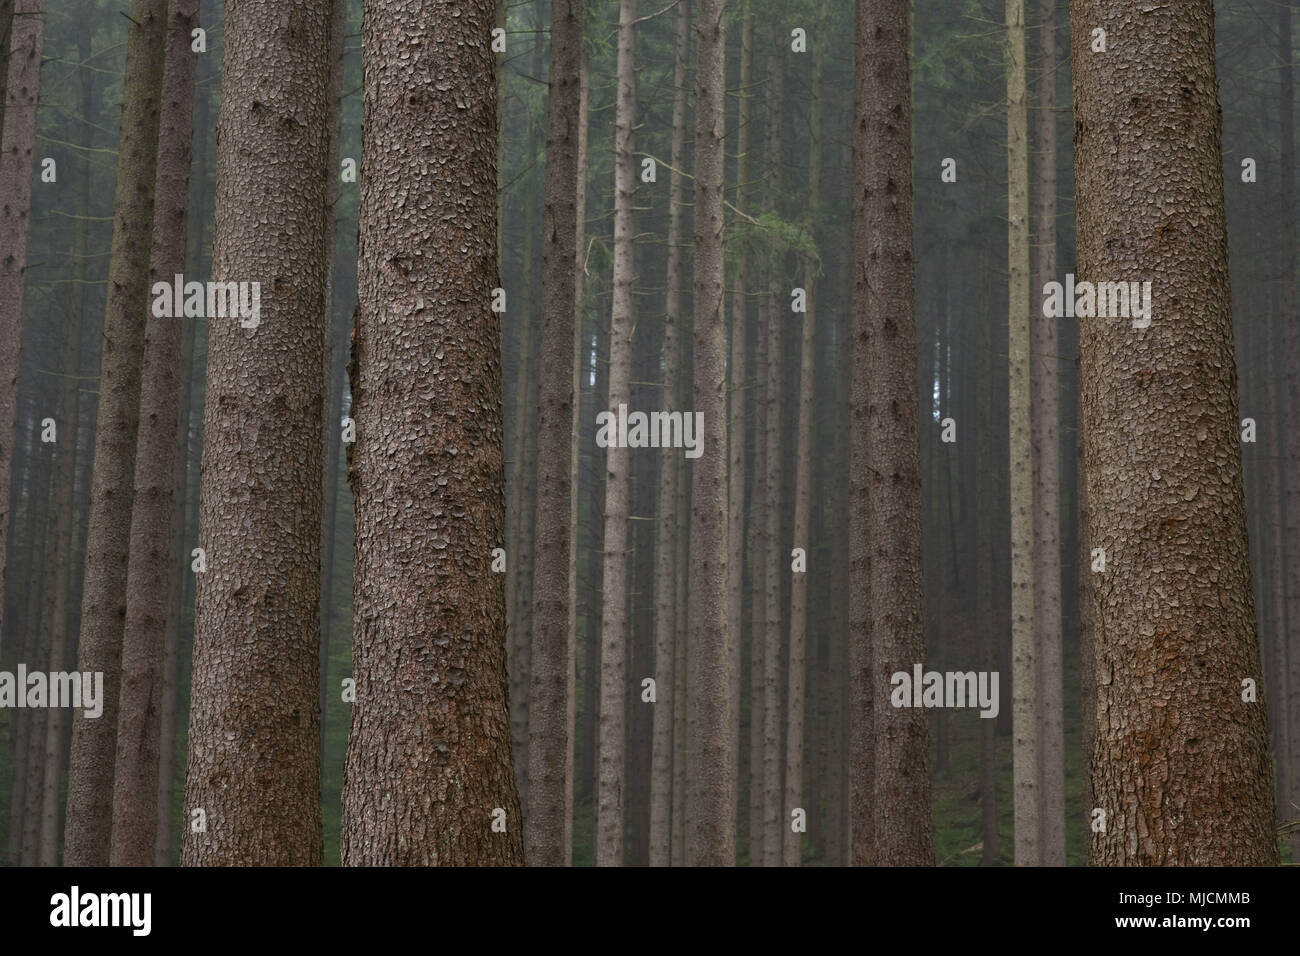 Conifer forest, Germany, - Stock Image